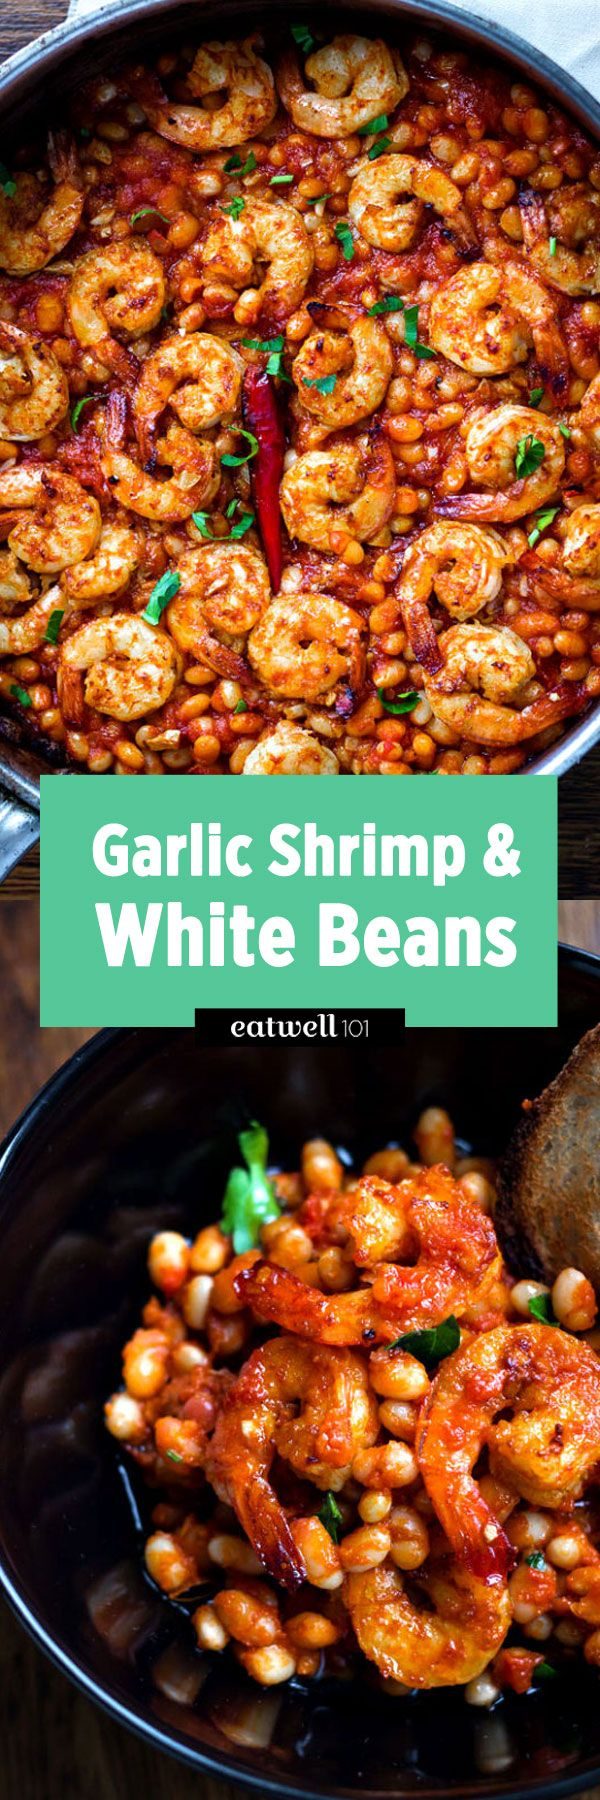 Spicy Garlic Shrimp and White Beans – Here's what you should make for a dinner that feels special. Shrimp pairs perfectly with white beans and tomatoes for a spicy comfort-food classic.Ingred…